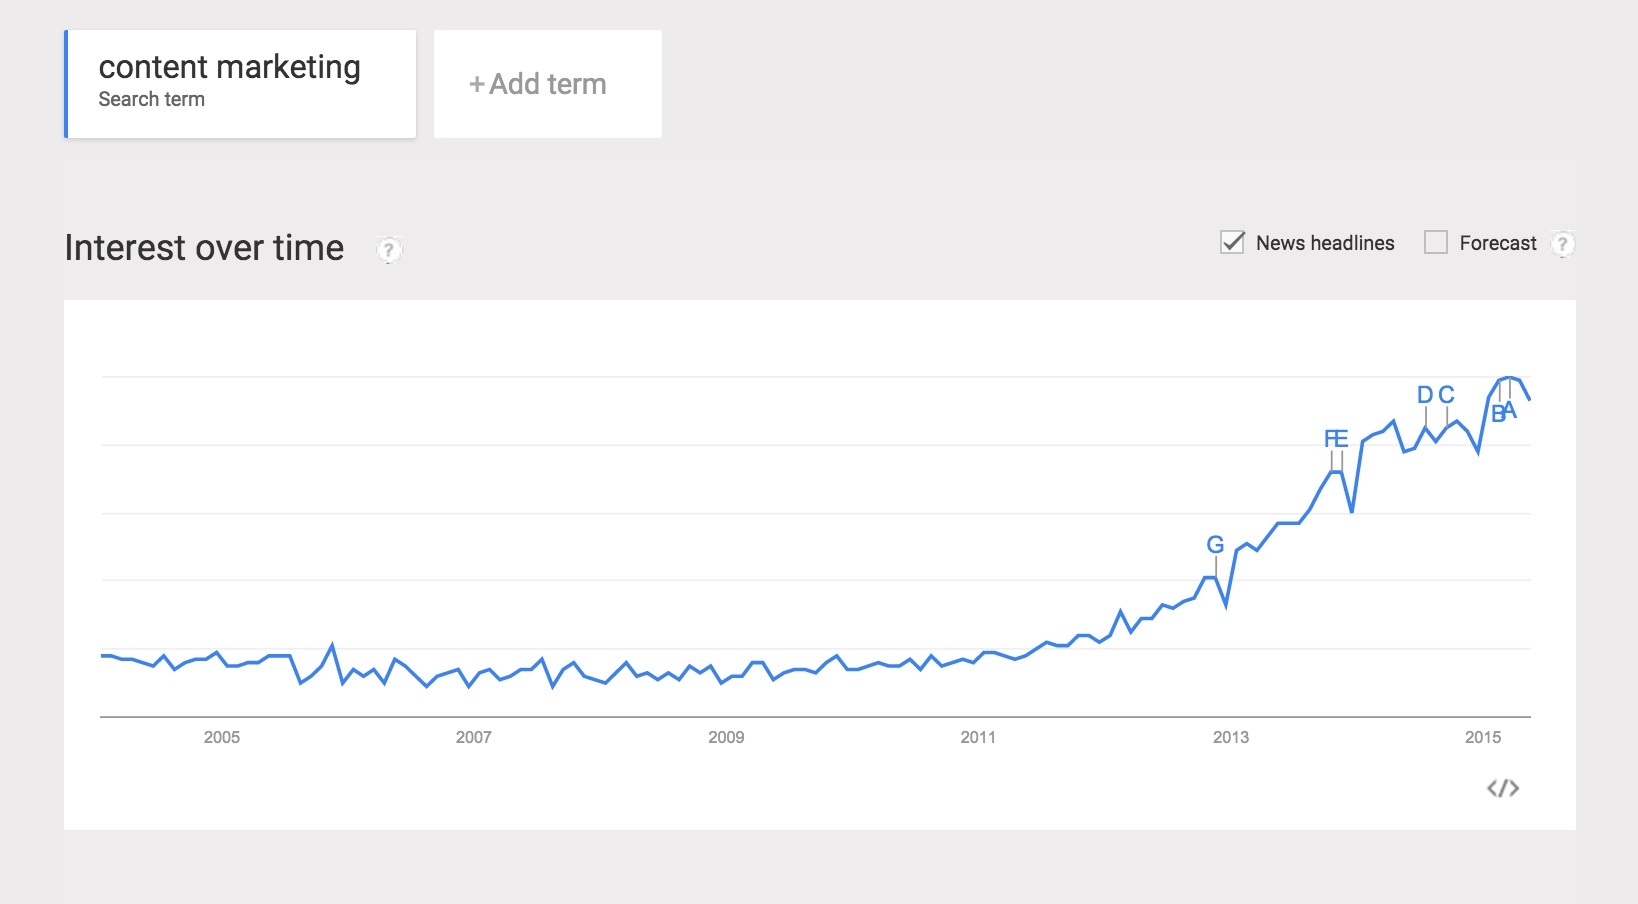 Google_Trends_-_Web_Search_interest__content_marketing_-_Worldwide__2004_-_present